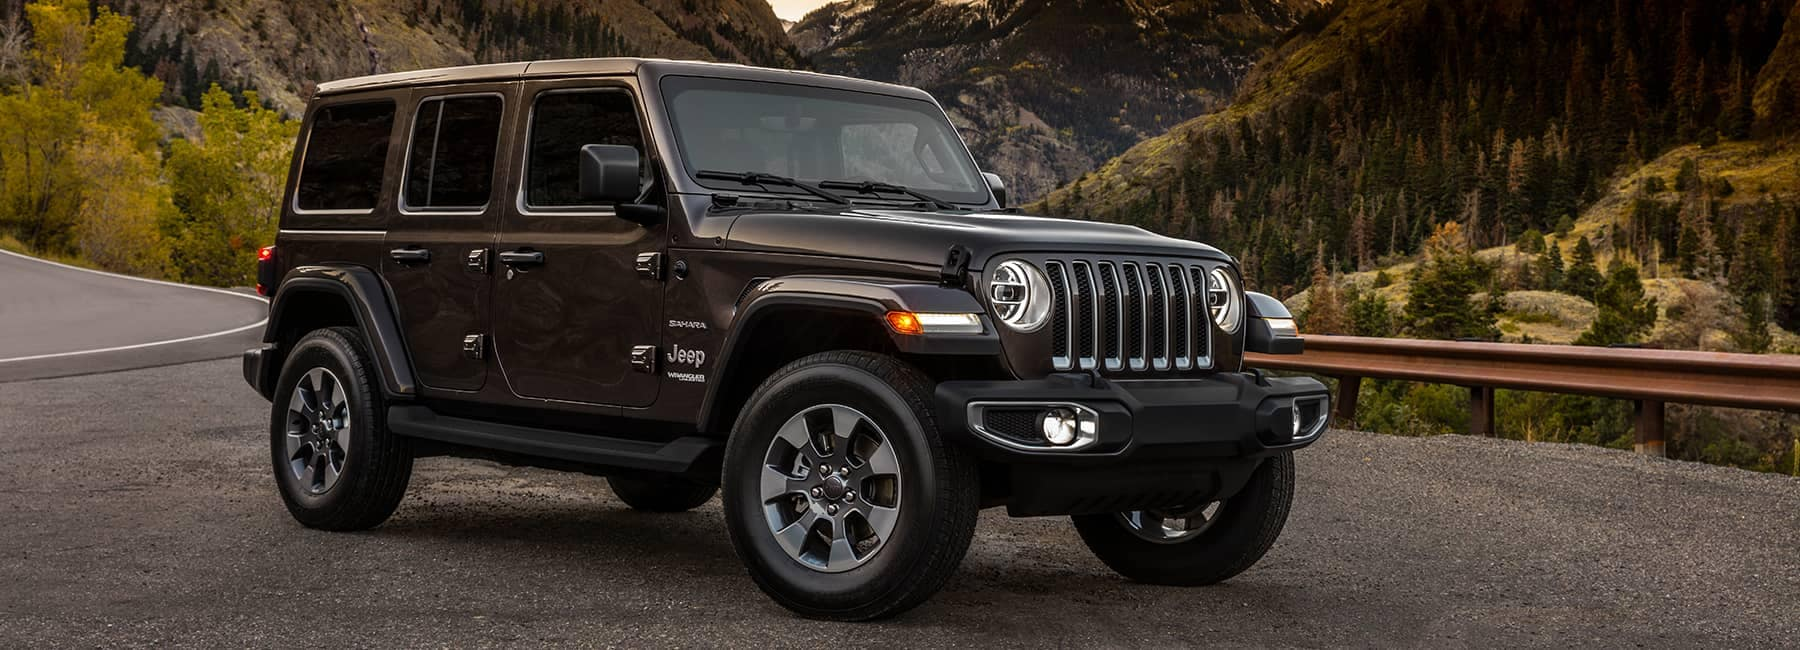 2018-Wrangler-at-Sunset (1)